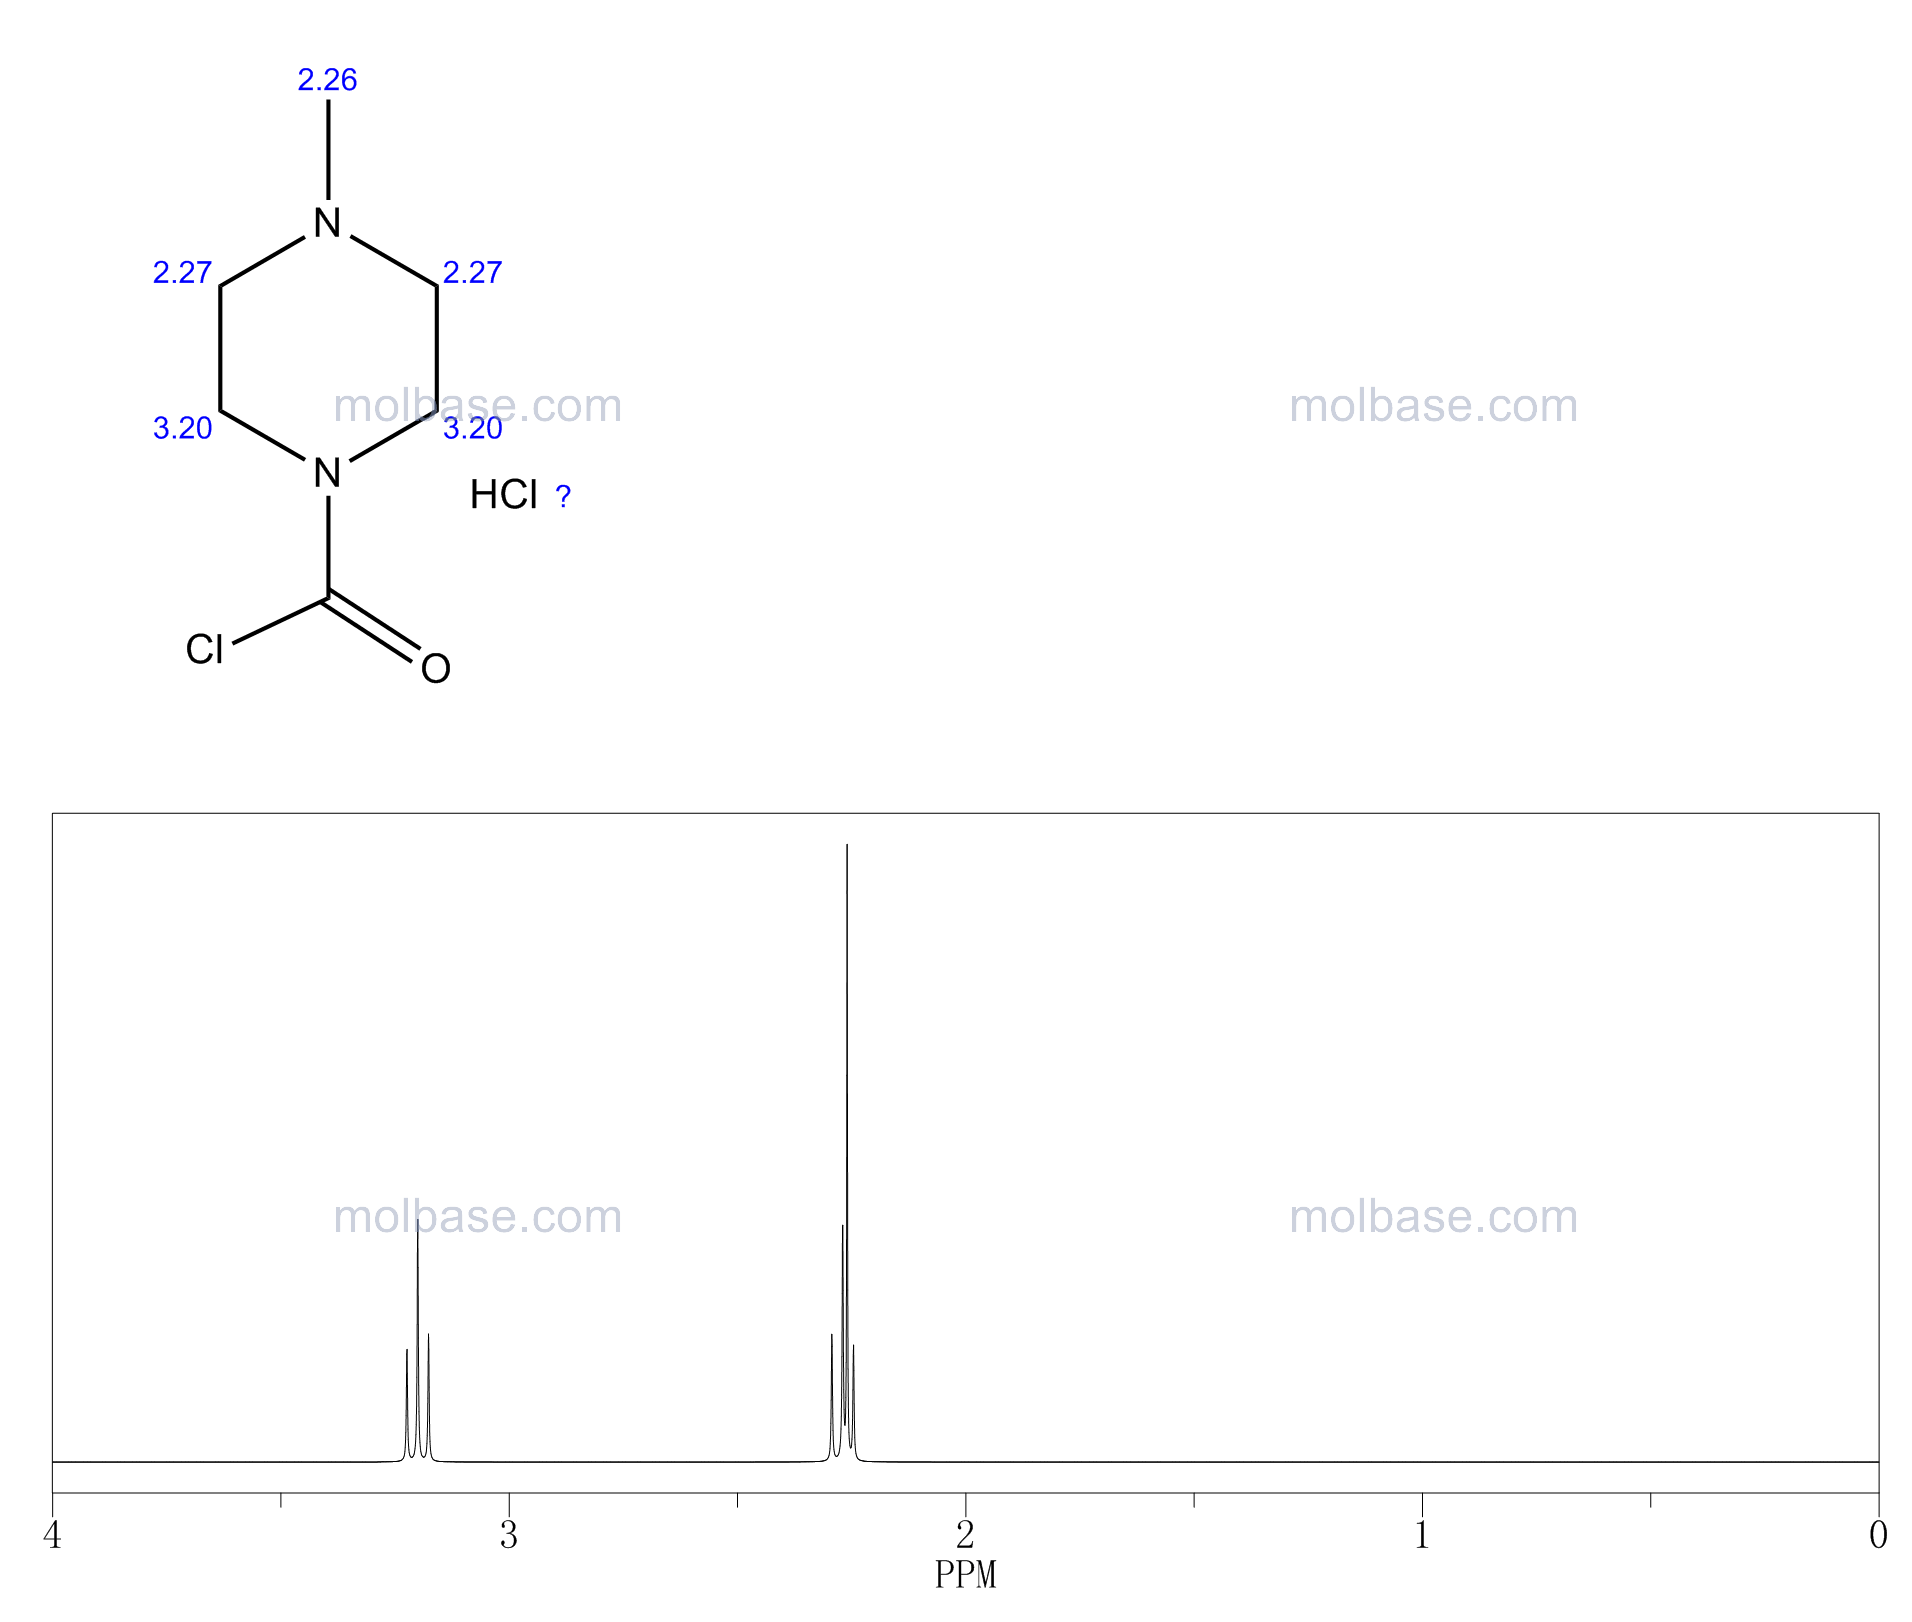 4-Methyl-1-piperazinecarbonyl chloride hydrochloride NMR spectra analysis, Chemical CAS NO. 55112-42-0 NMR spectral analysis, 4-Methyl-1-piperazinecarbonyl chloride hydrochloride C-NMR spectrum